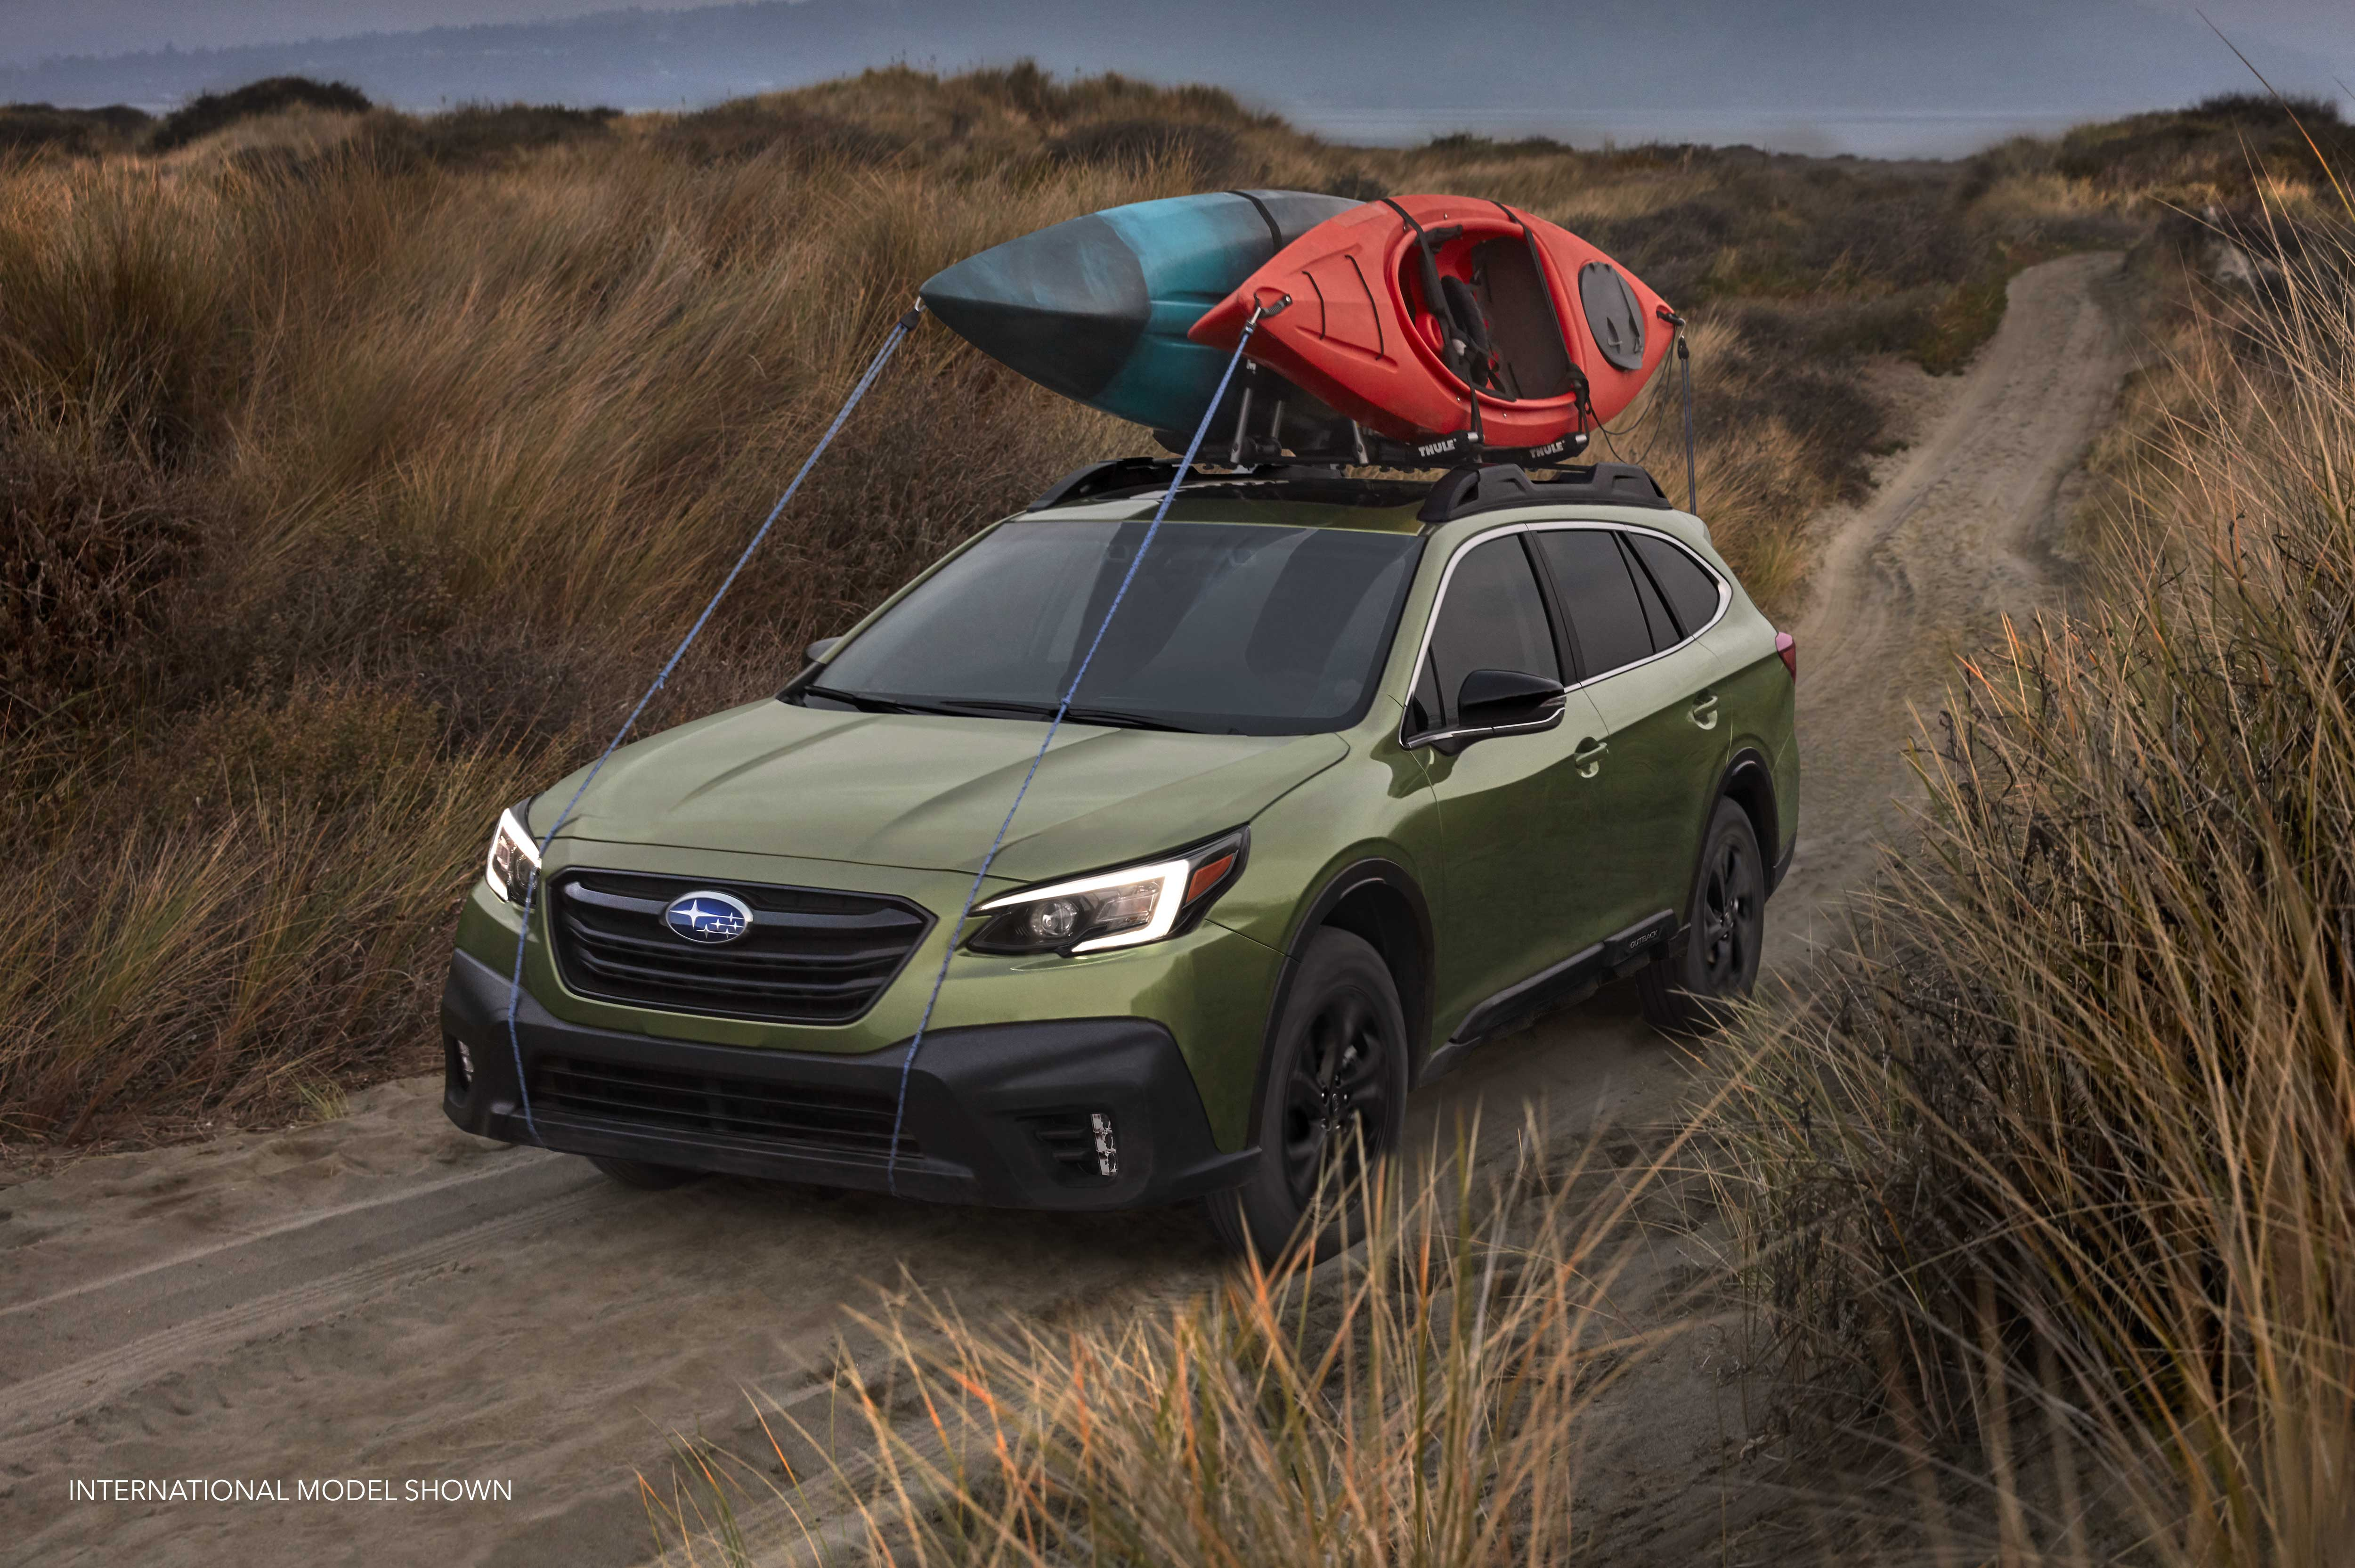 77 All New Subaru Outback New Model 2020 Ratings by Subaru Outback New Model 2020